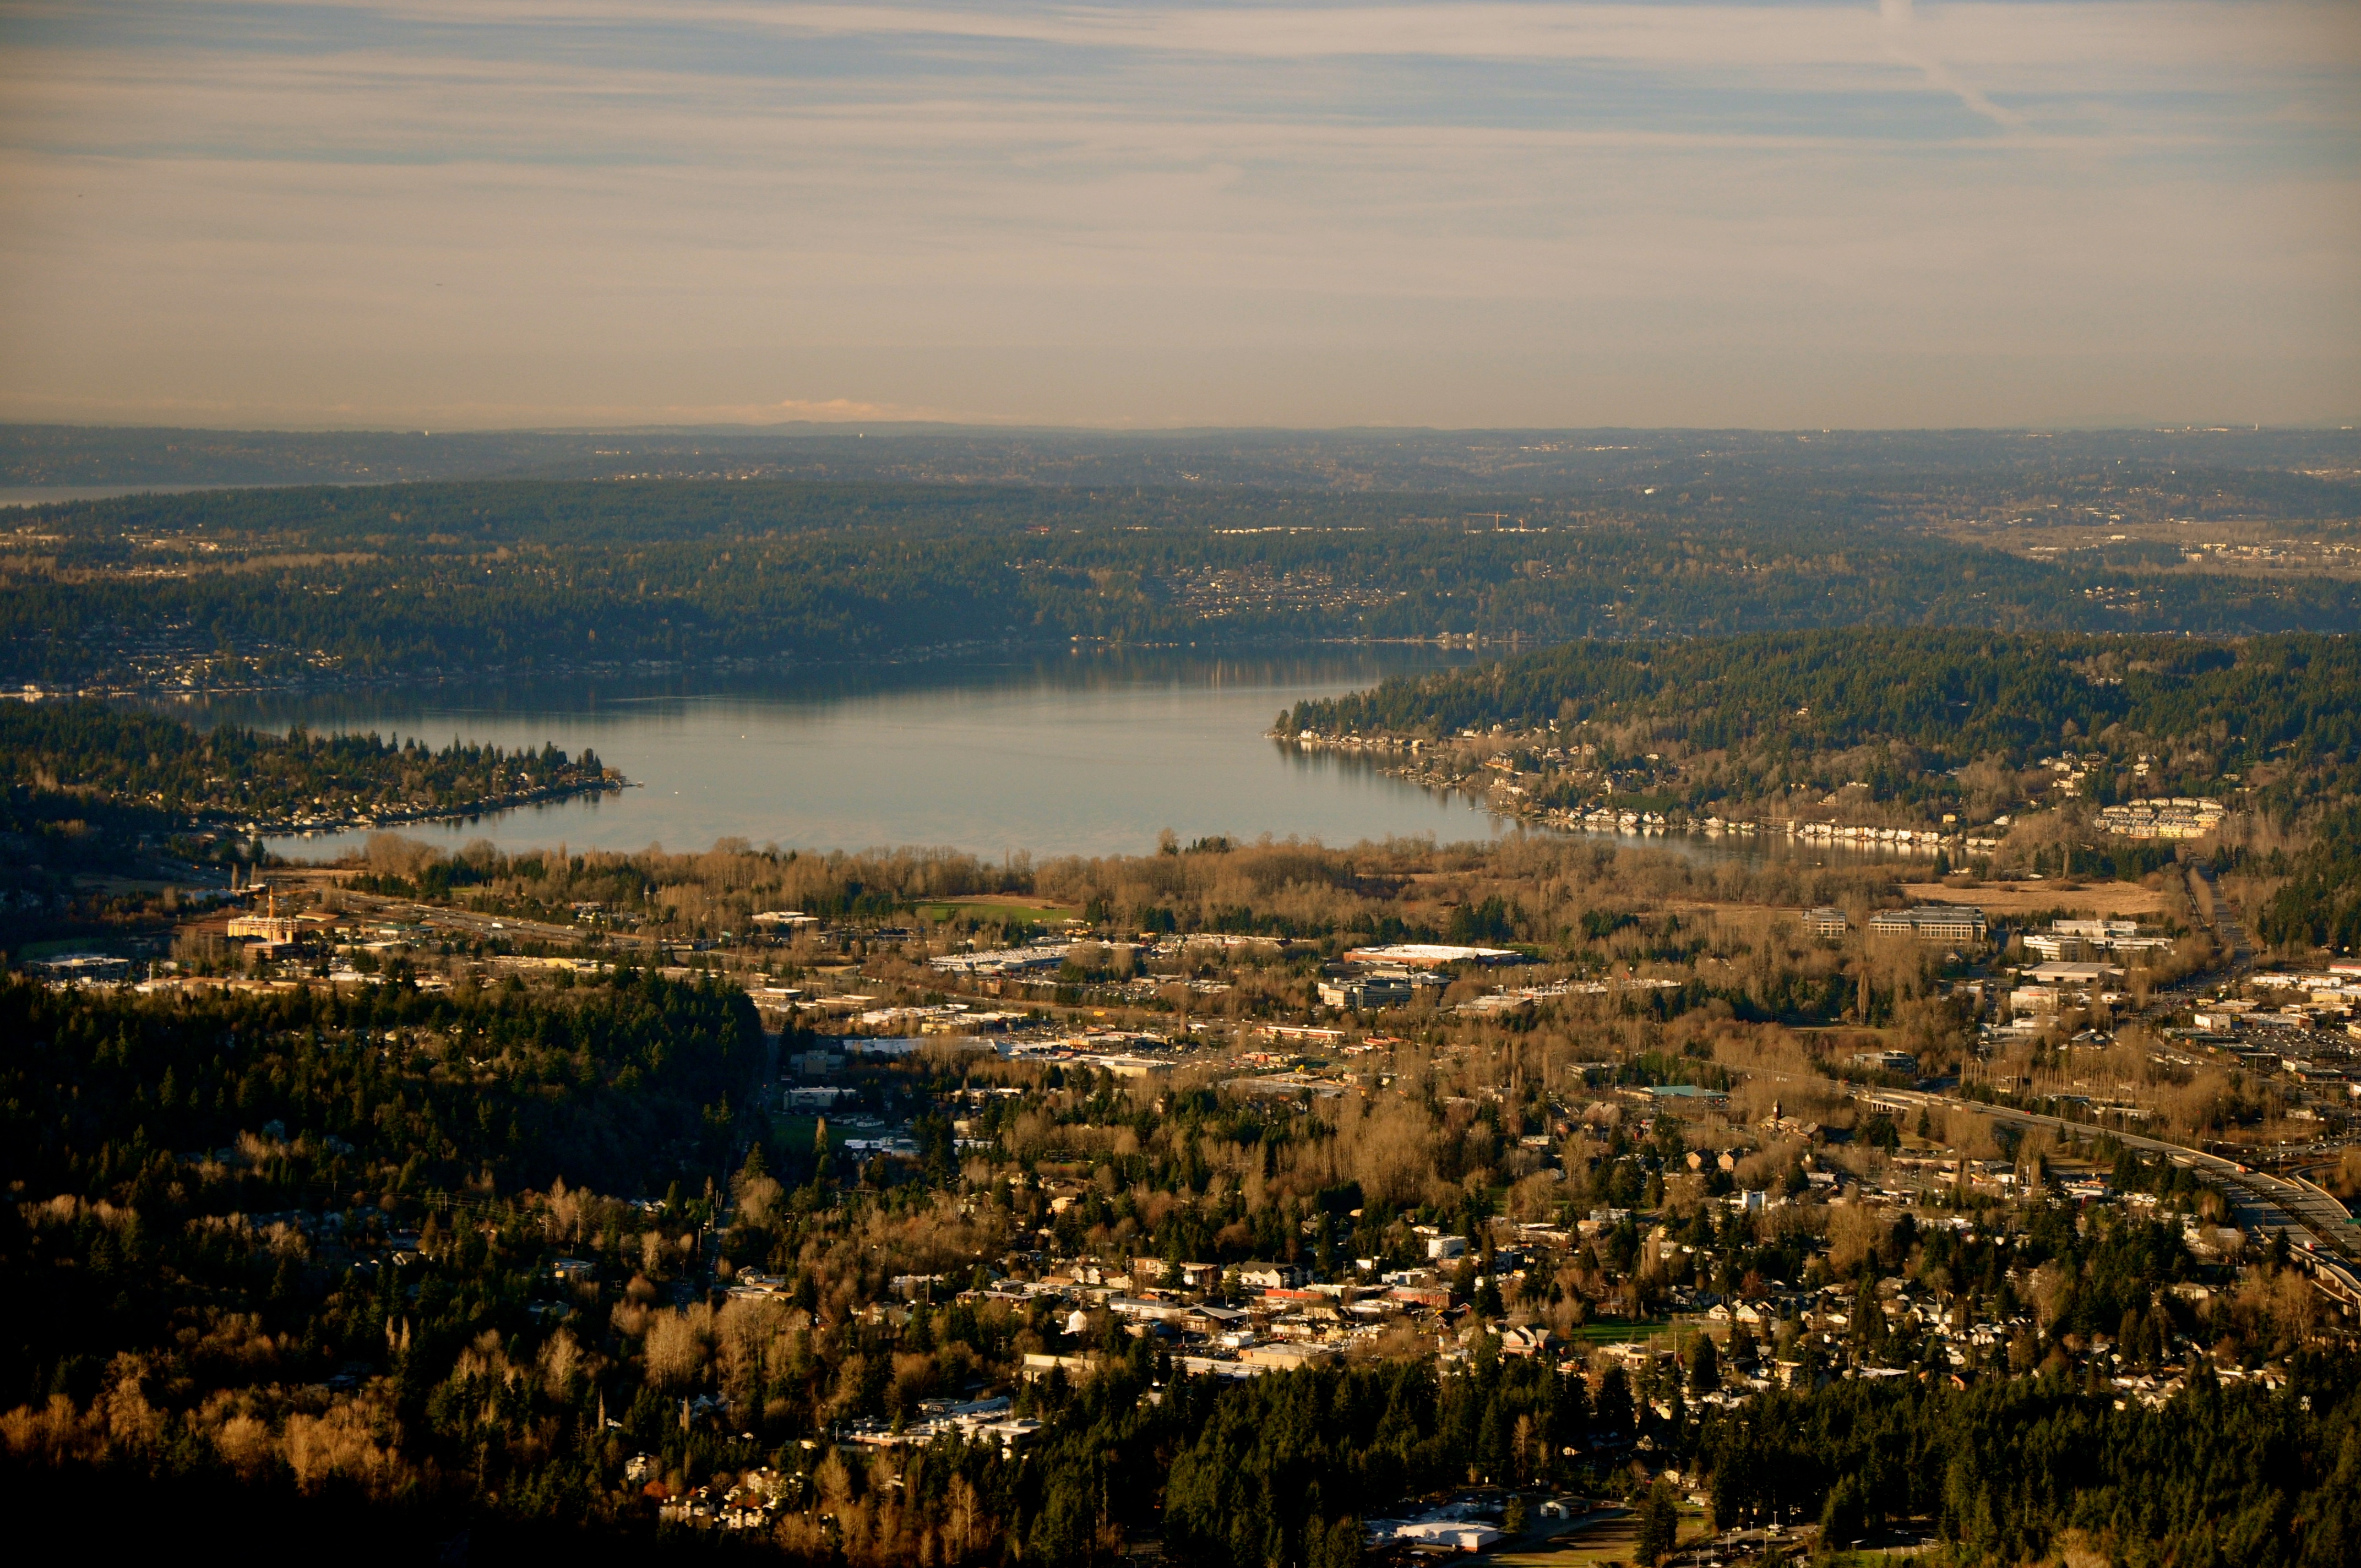 Below sprawls Issaquah, Lake Sammamish, and beyond eventually to the Salish Sea.